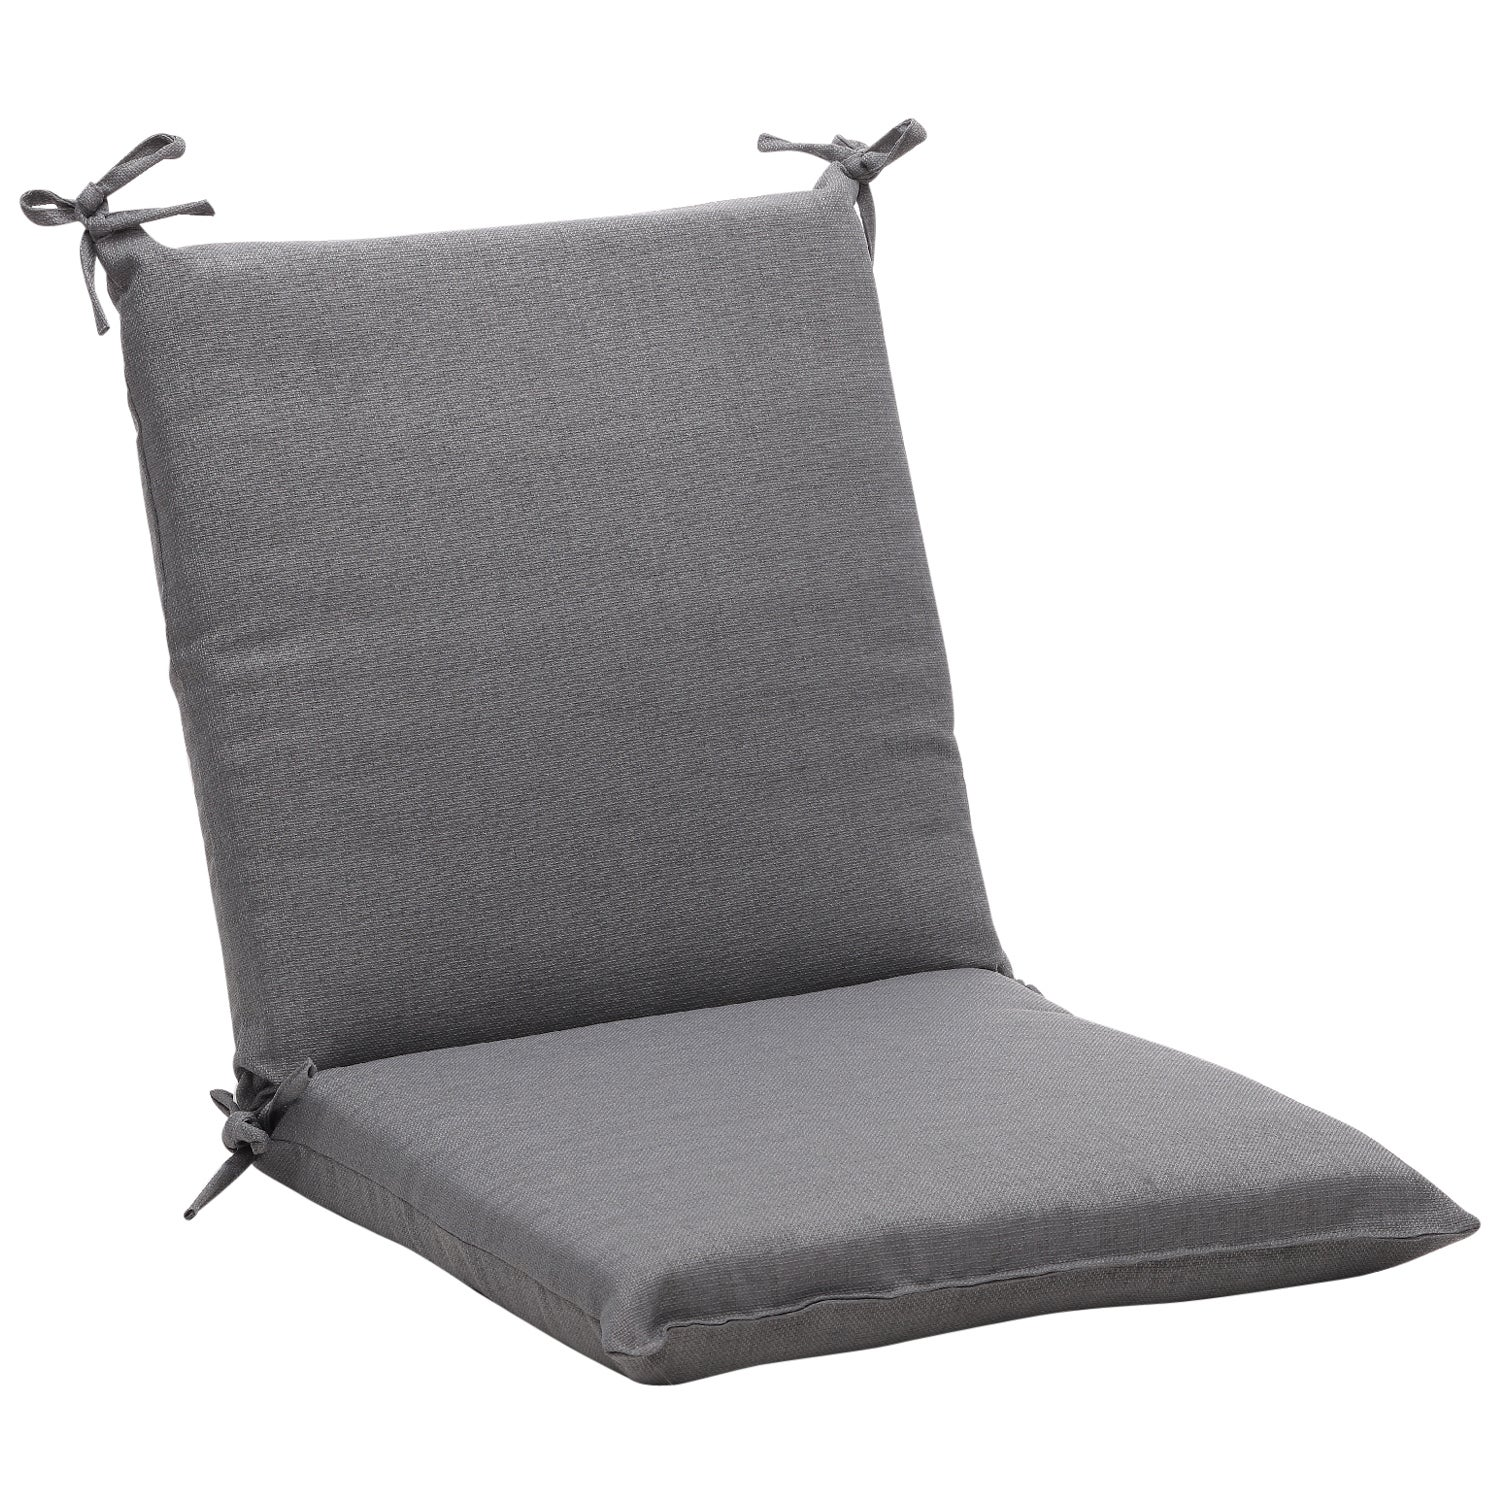 Patio chair cushions clearance - Squared Solid Gray Textured Outdoor Chair Cushion Free Shipping